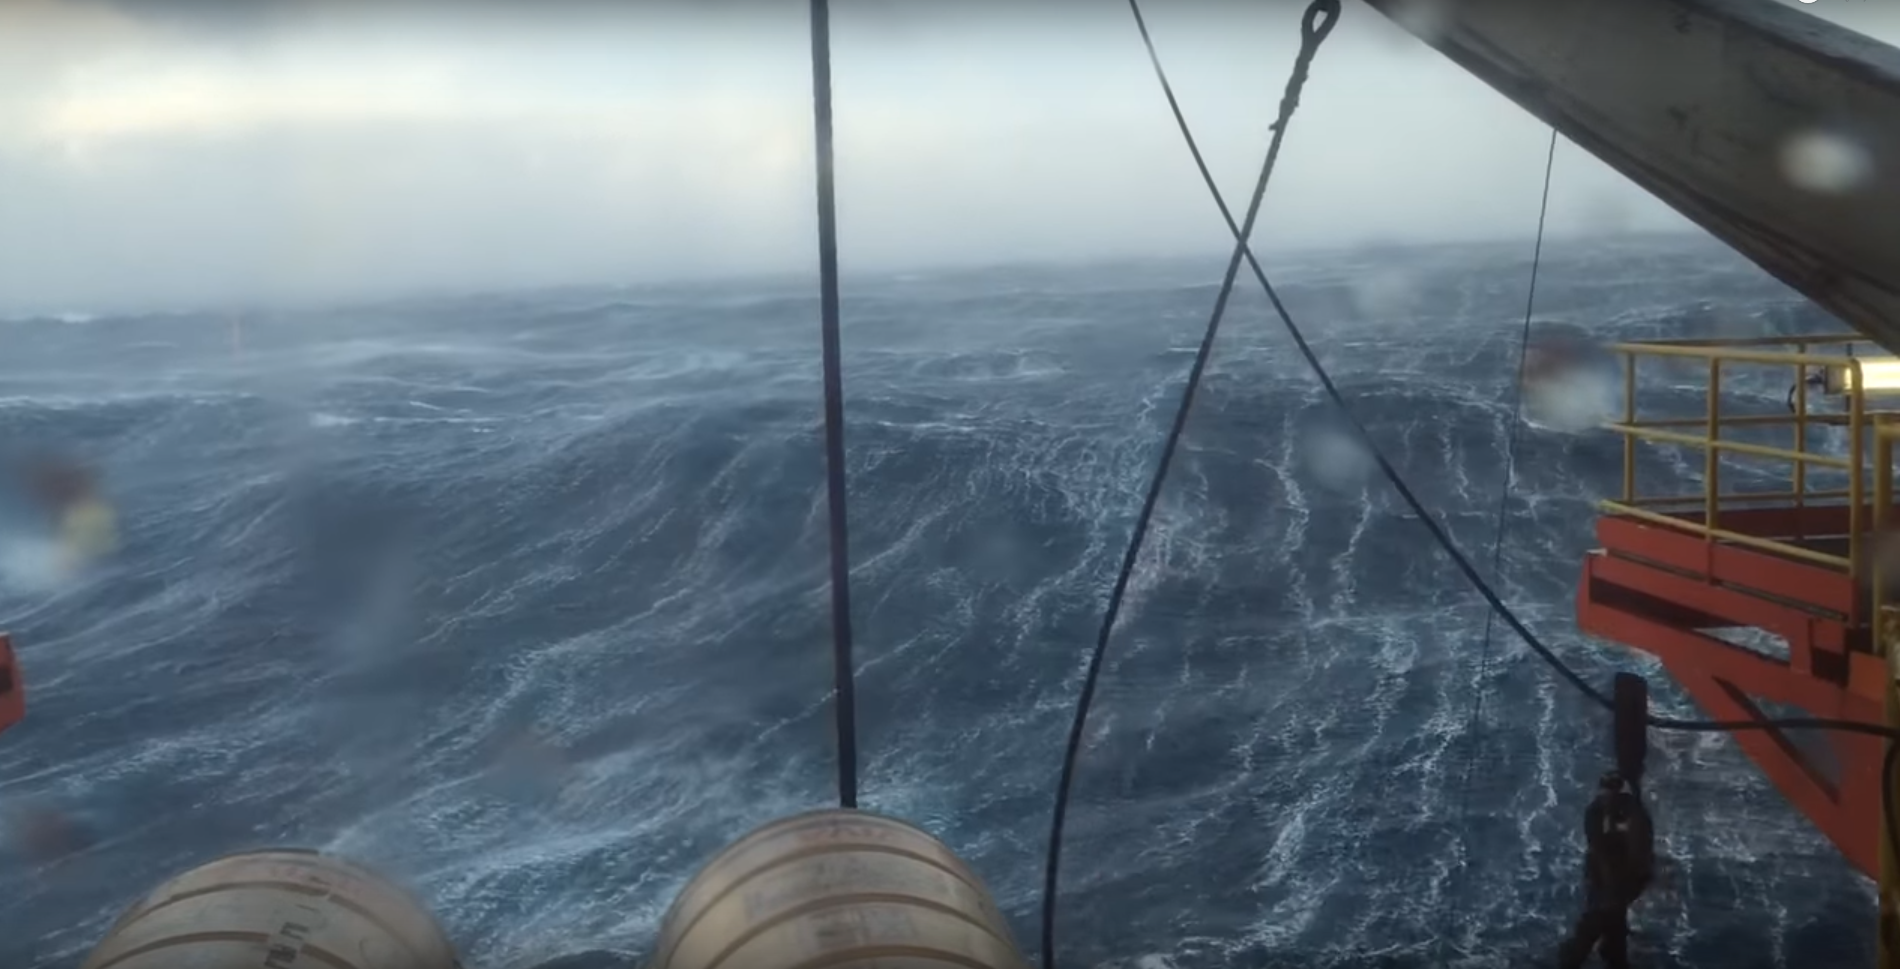 Incredible waves have been recorded in the North Sea